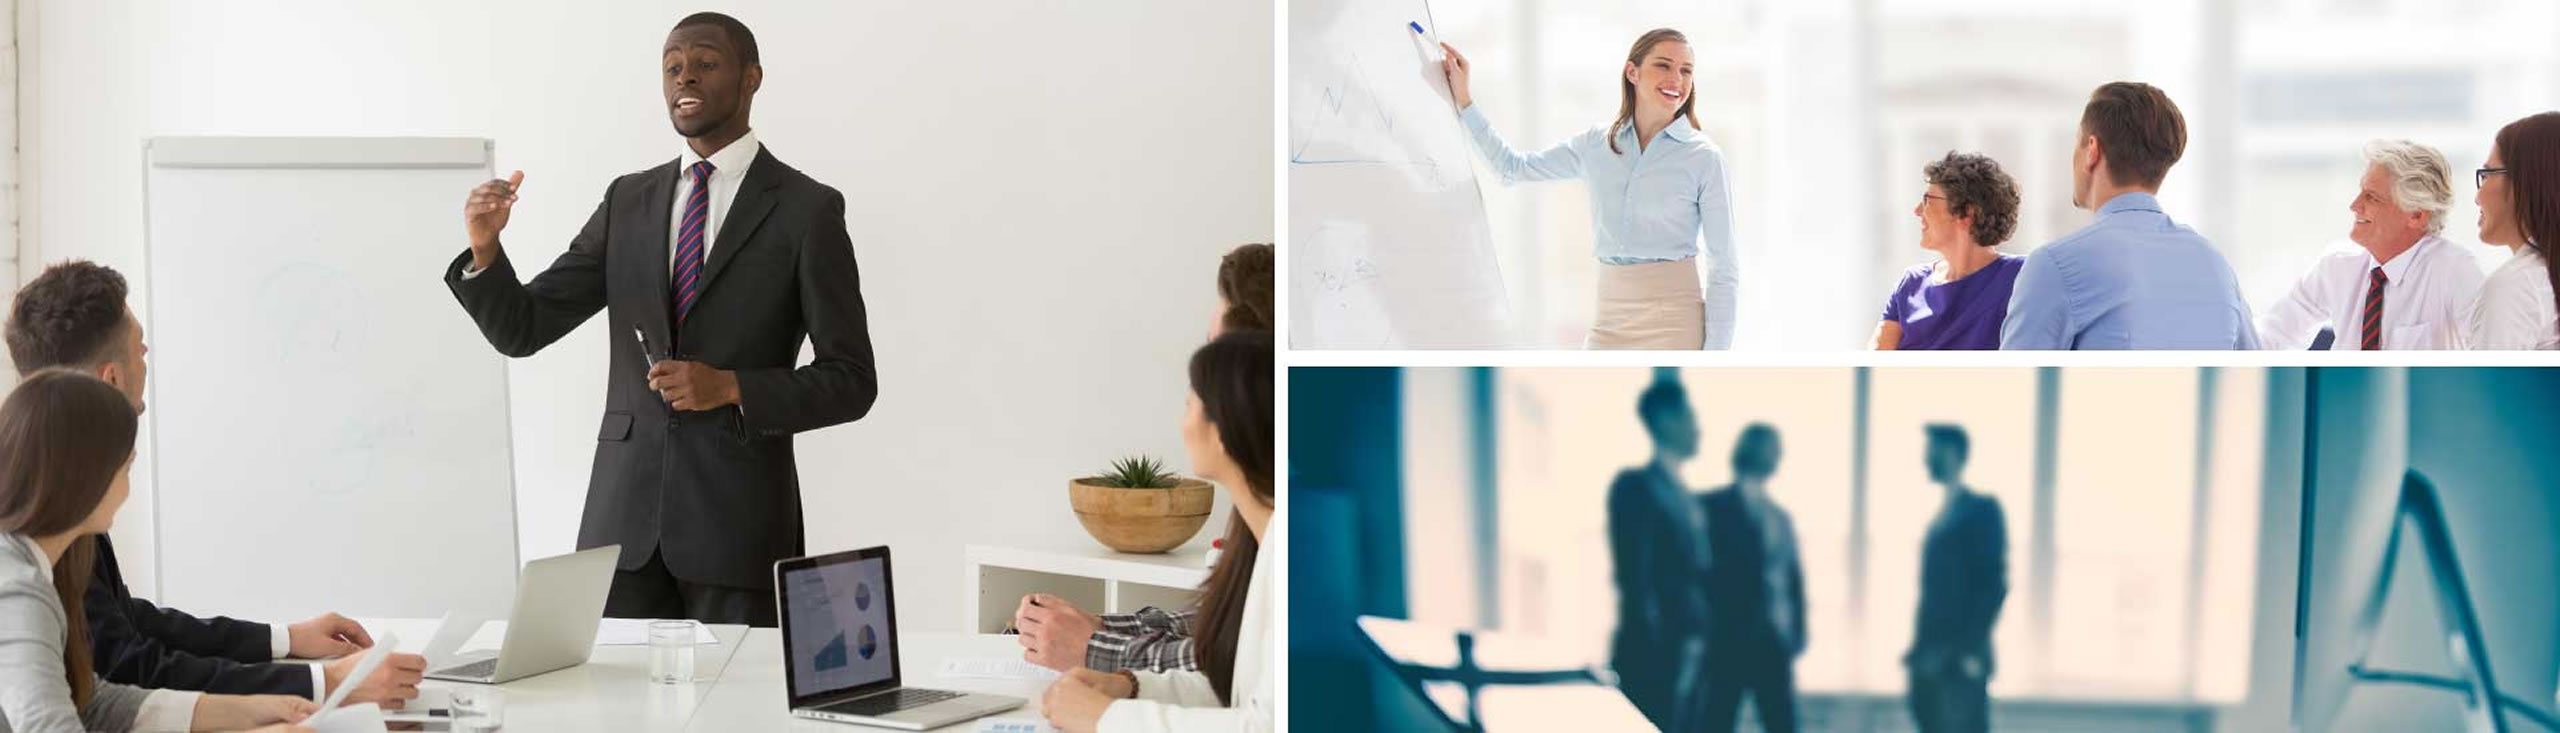 Three images of business professionals and executives giving presentations in front of coworkers.